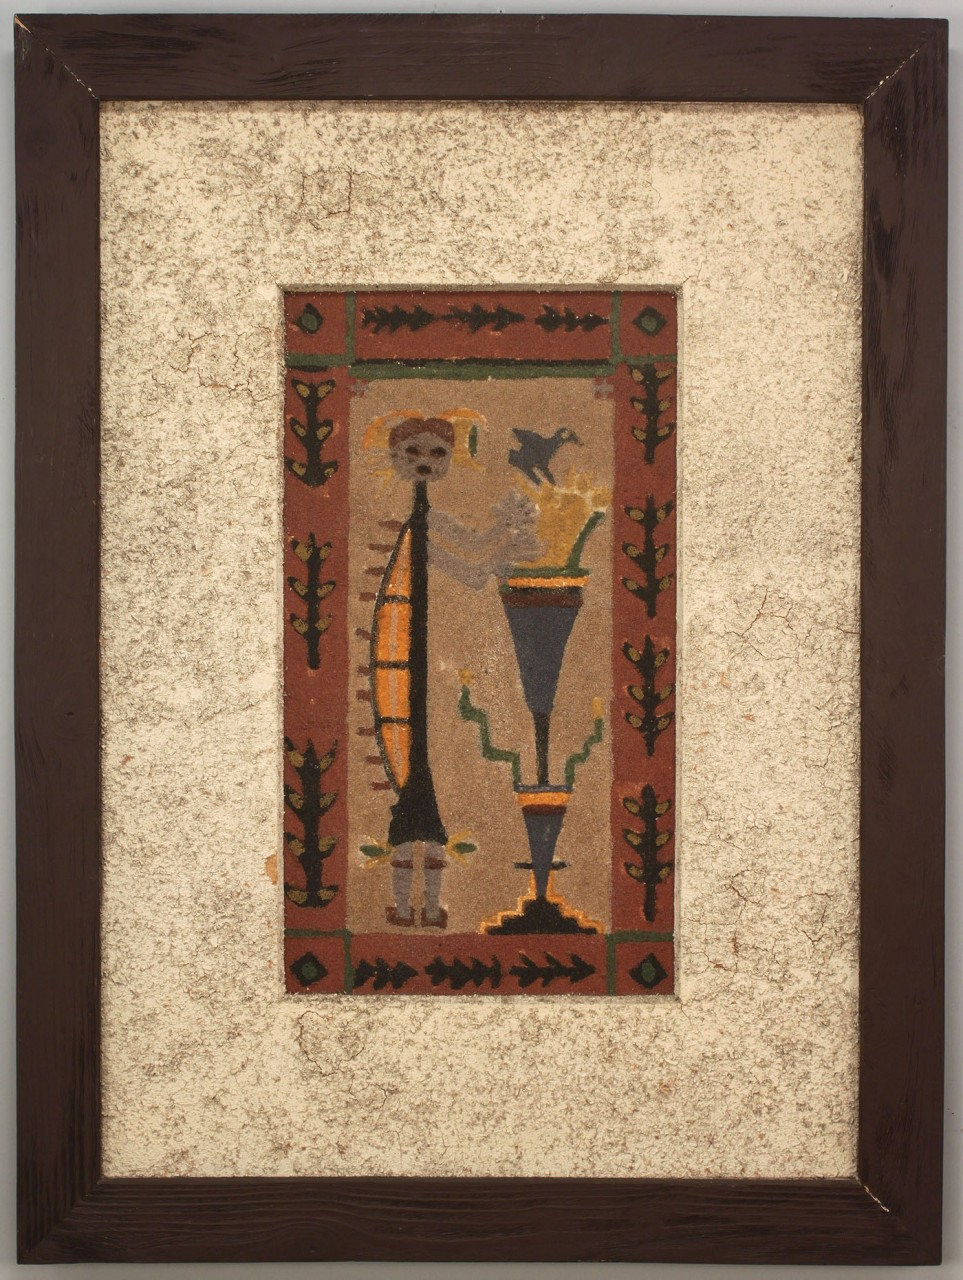 Lot 684: Large Native American Sand Painting, Houle